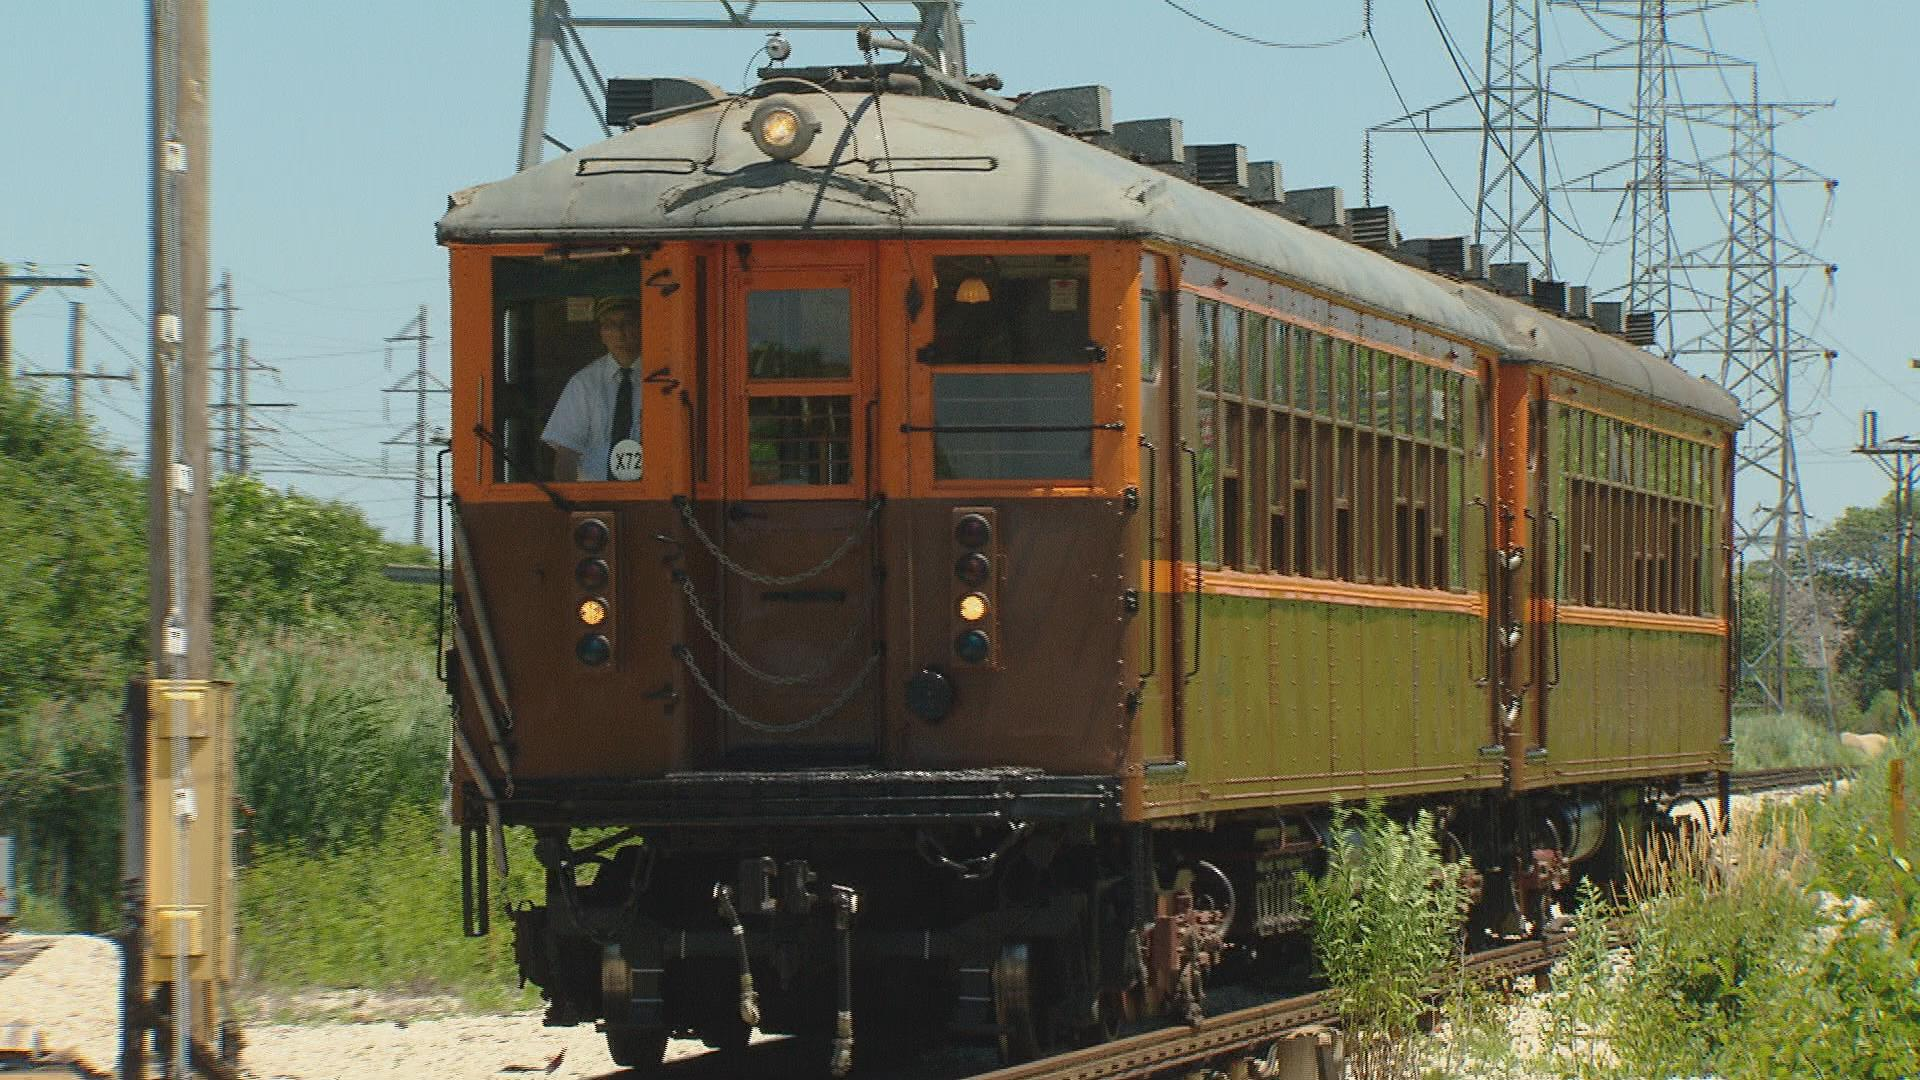 Vintage CTA Trains, Buses Offer Peek at 1920s Transit | Chicago ...